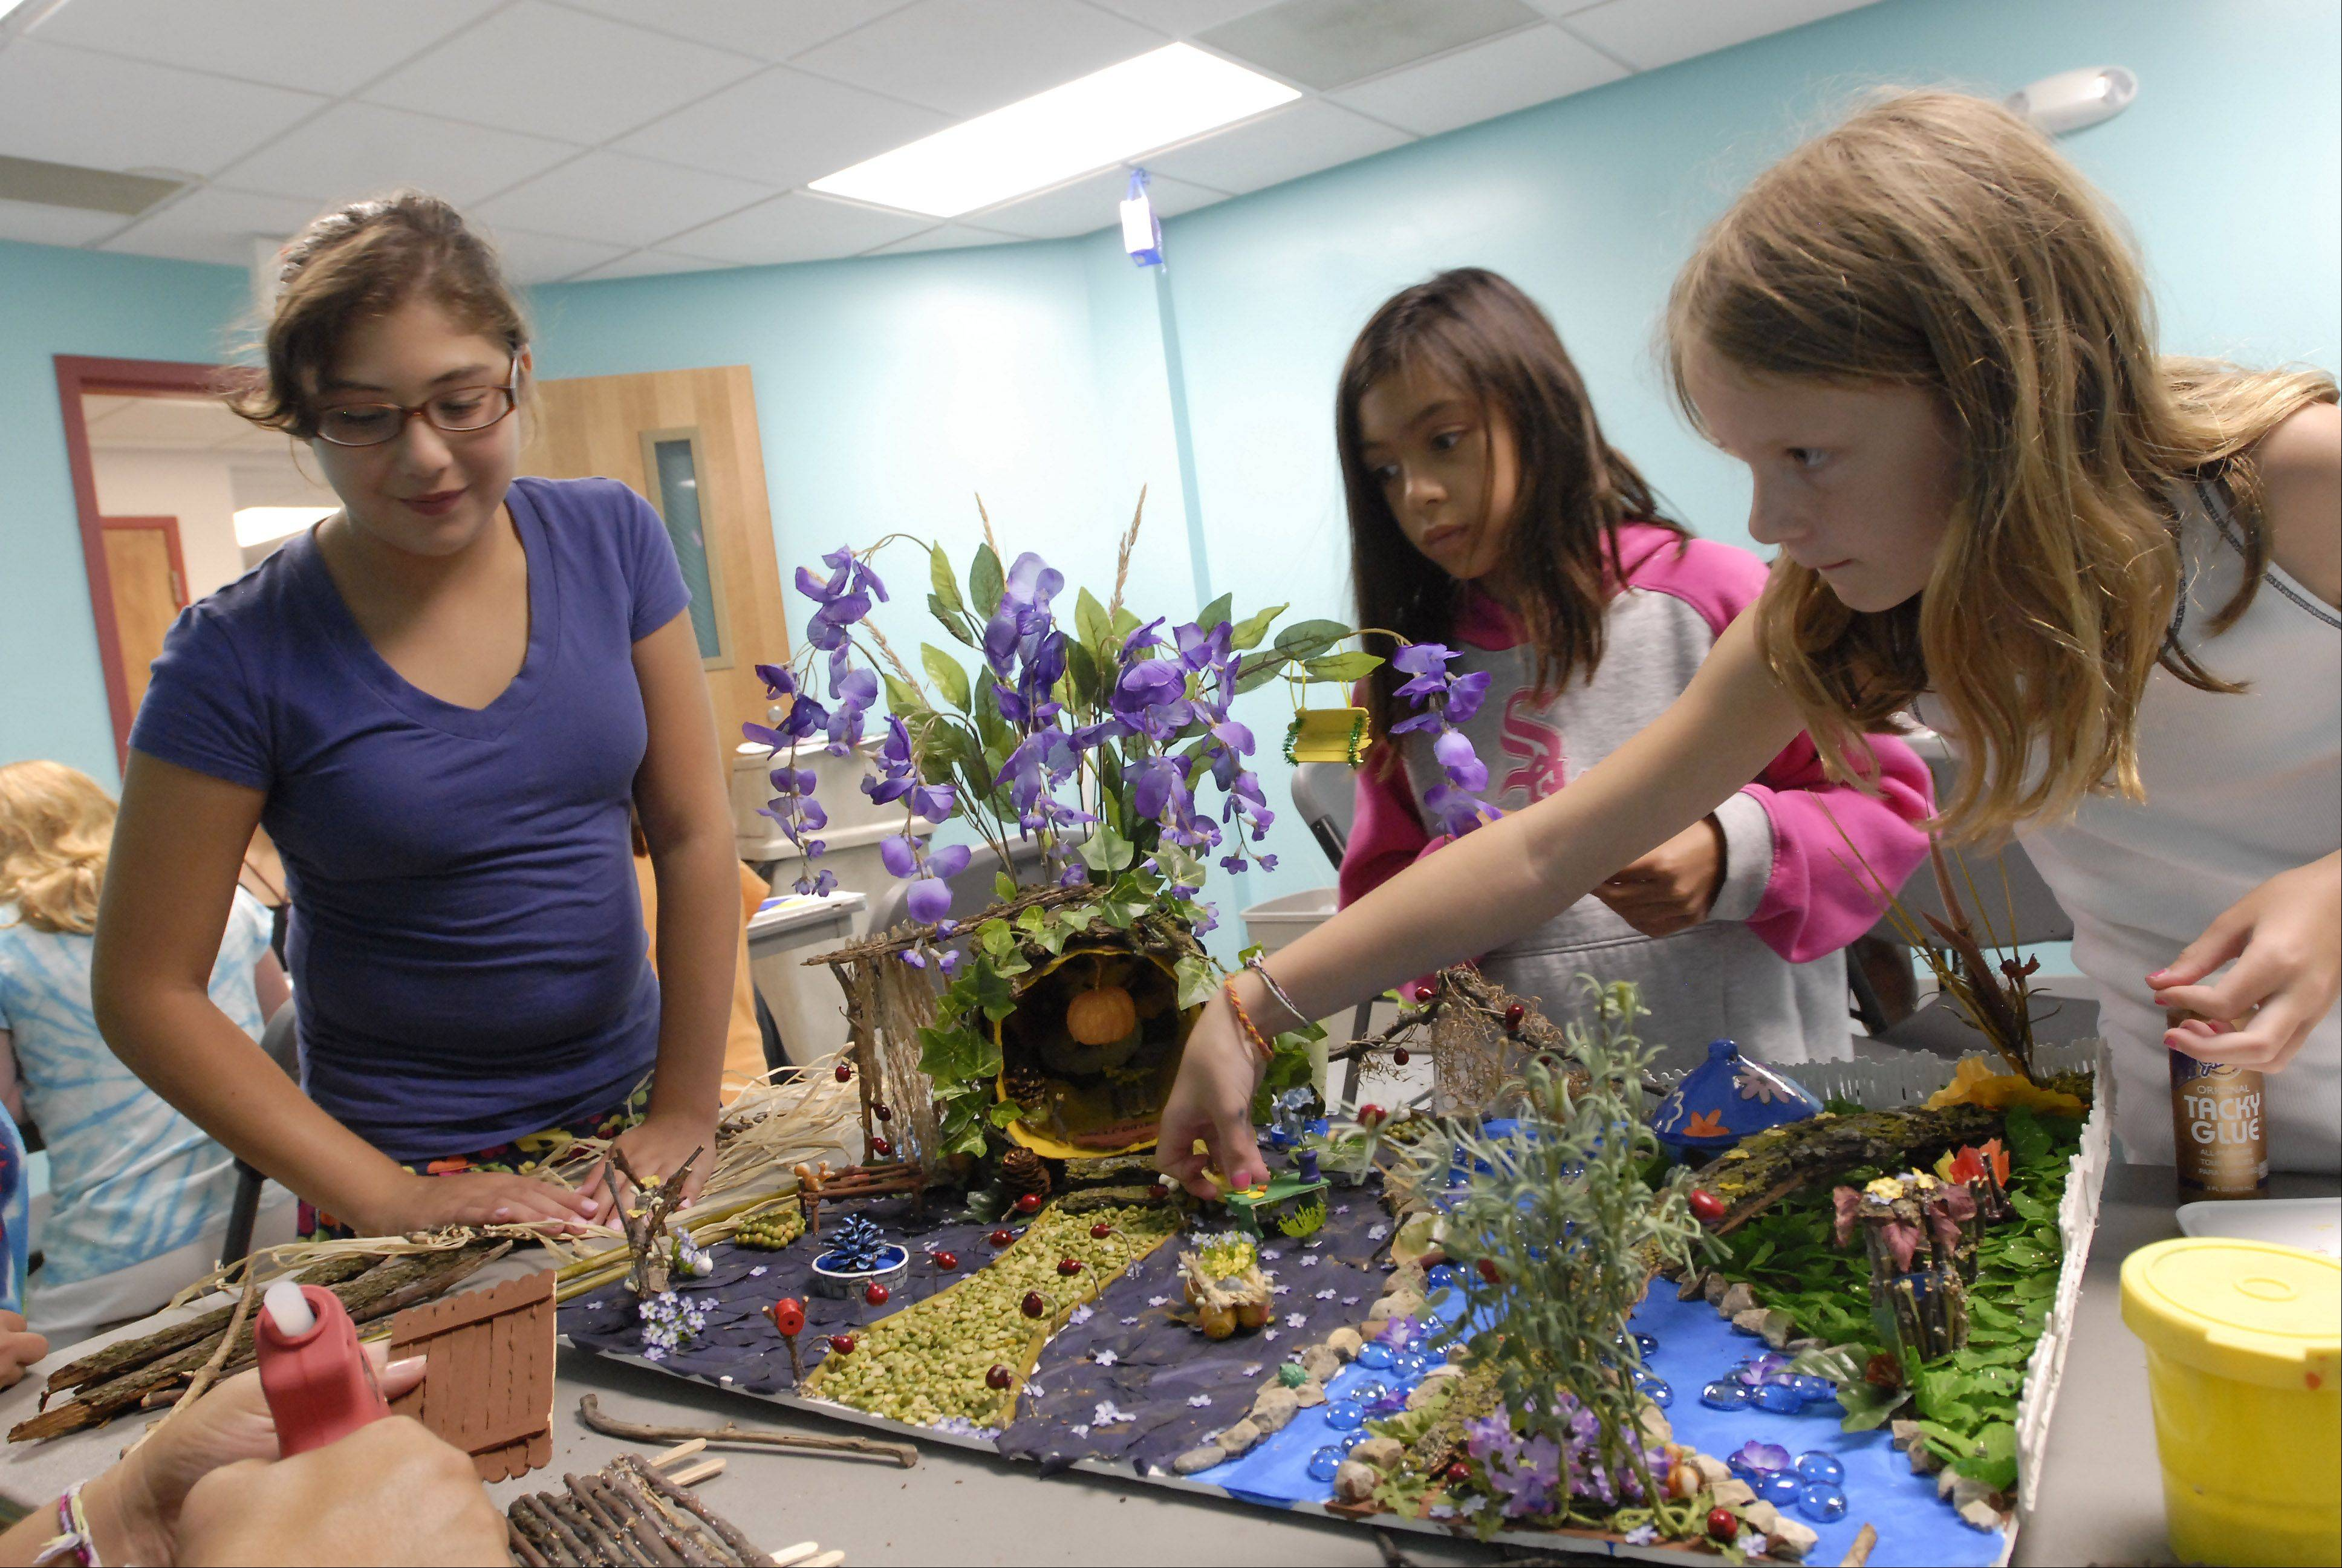 Tara Gabriel, 11, Morgan Grelyak, 8, and Lindsay Cohen, 7, all of Schaumburg, work on a fairy house in the craft room at the Schaumburg Park District Day Camp.